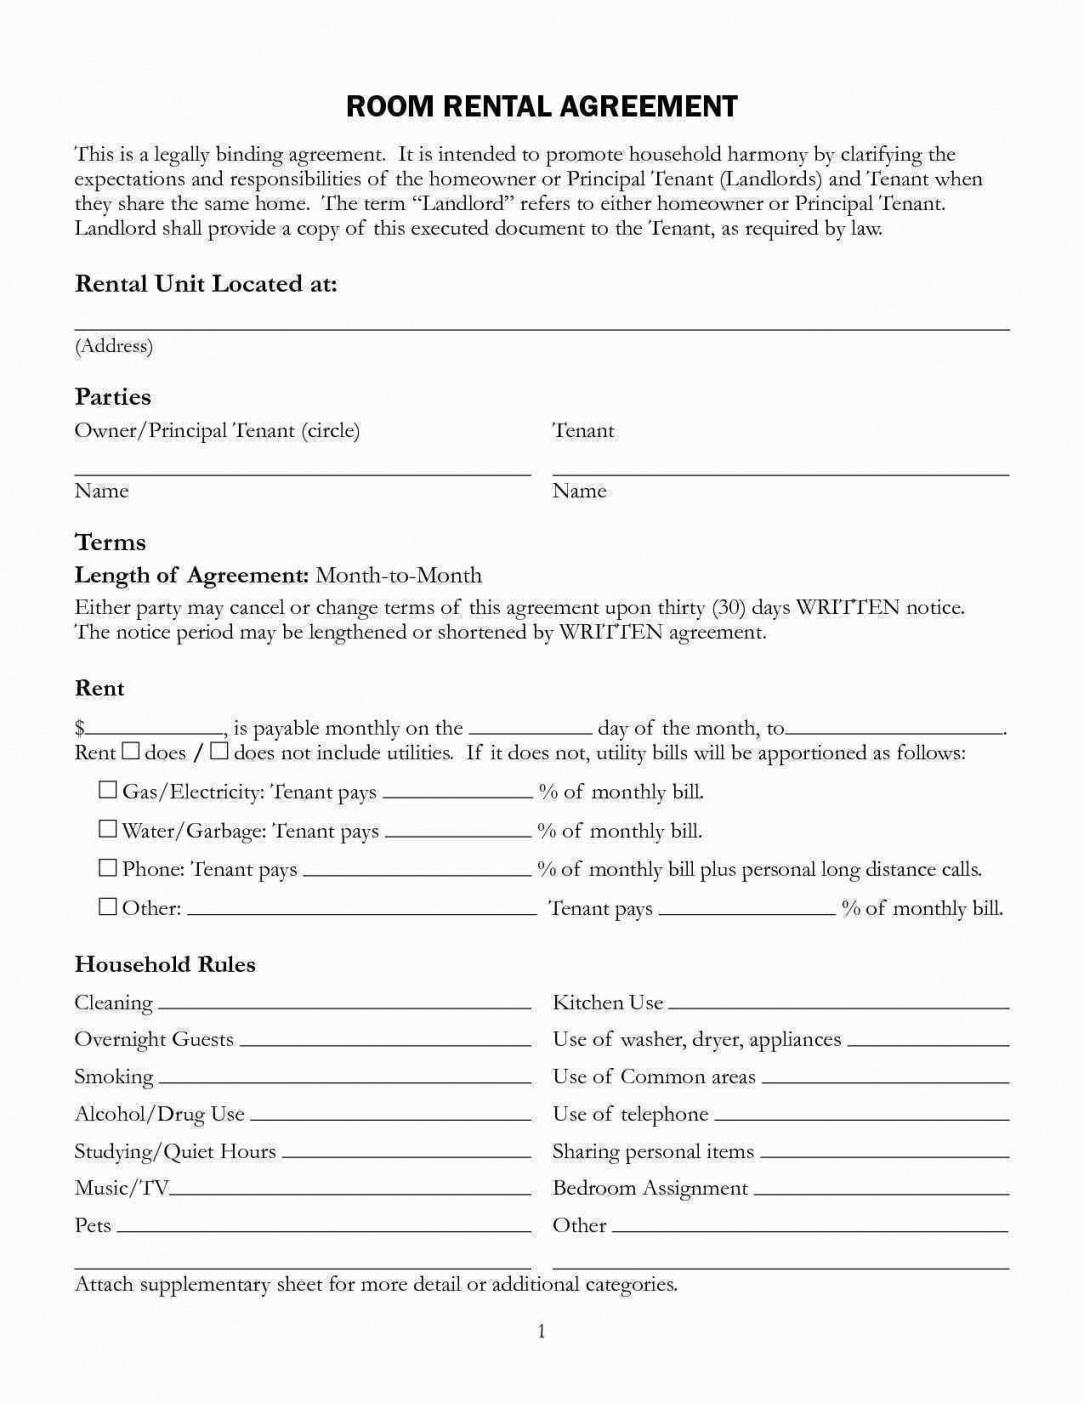 our 004 house rental contract template free unique blank agreement pdf home rental agreement contract